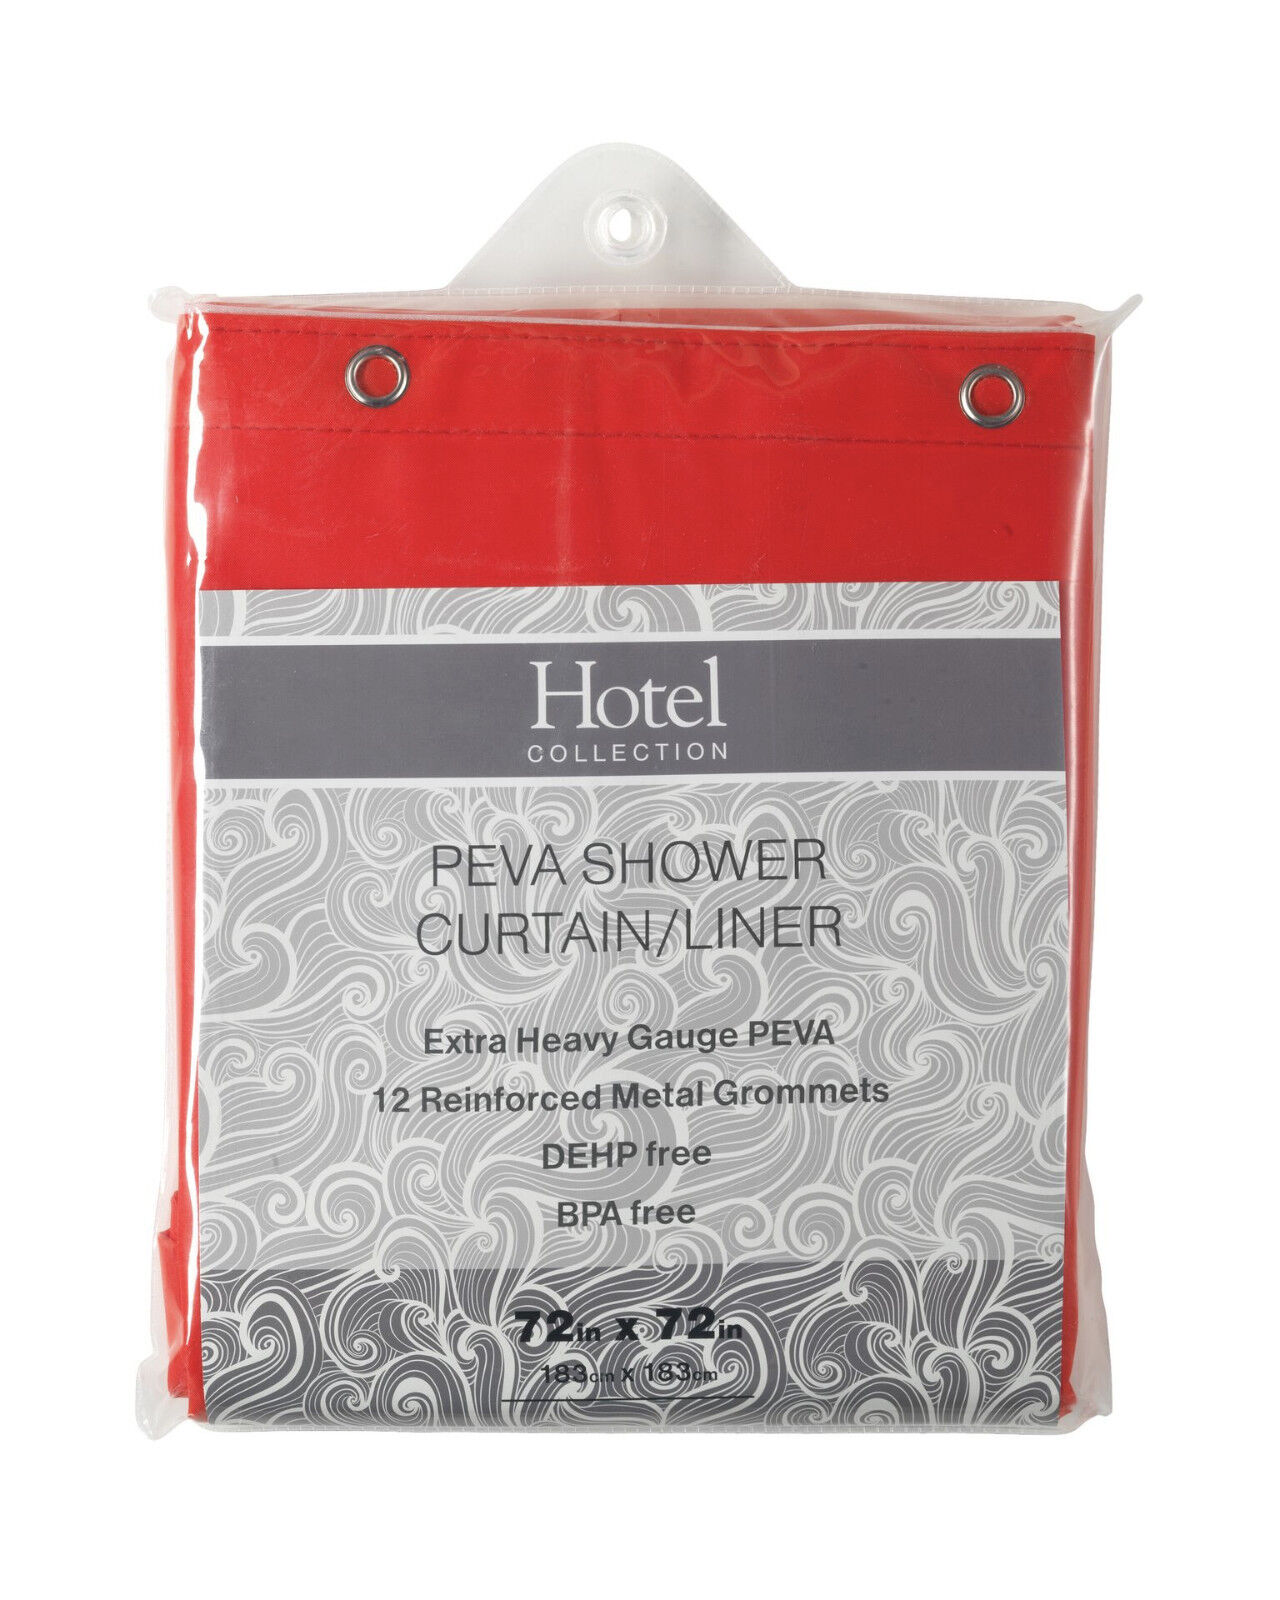 Hotel Collection Non Toxic 10 Gauge Peva Shower Curtain